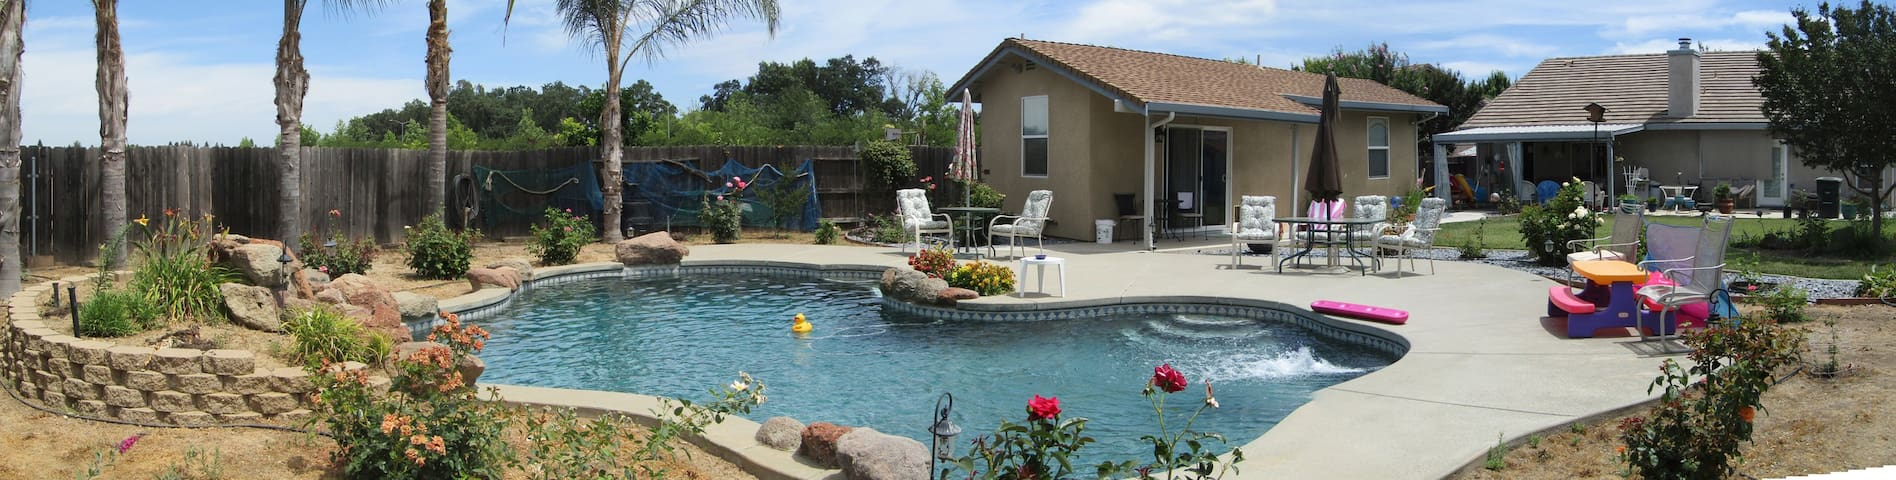 The Pool House @ Yuba City - Yuba City